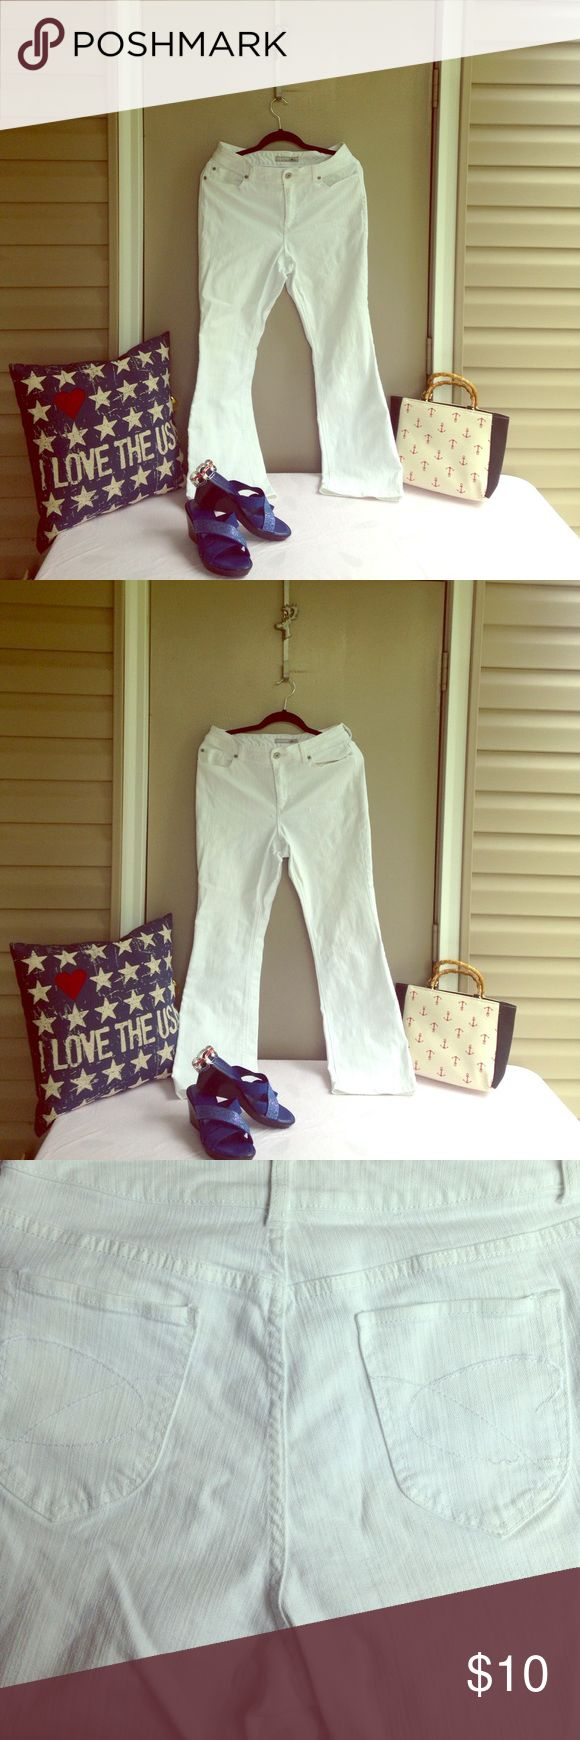 🇺🇸2 for $14 Deal🇺🇸 Denim Daze White Jeans 🇺🇸2 for $14 Deal🇺🇸 Denim Daze Chico's Platinum 1.5 short White Jeans! Comfortable fit with stretch and flattering flat back pockets with stitching detail! Slight pulled thread on back pocket hardly seen see pic. Waist 32 inches inseam about 29 inches! Classic cool white in this nice one! Bundle 2 for $14. To get Bundle Deal for 2 different items marked 2 for $14 (original price $10) CLICK ON ✅ BUNDLE  ✅ADD 2 different Items marked 2 for $14…